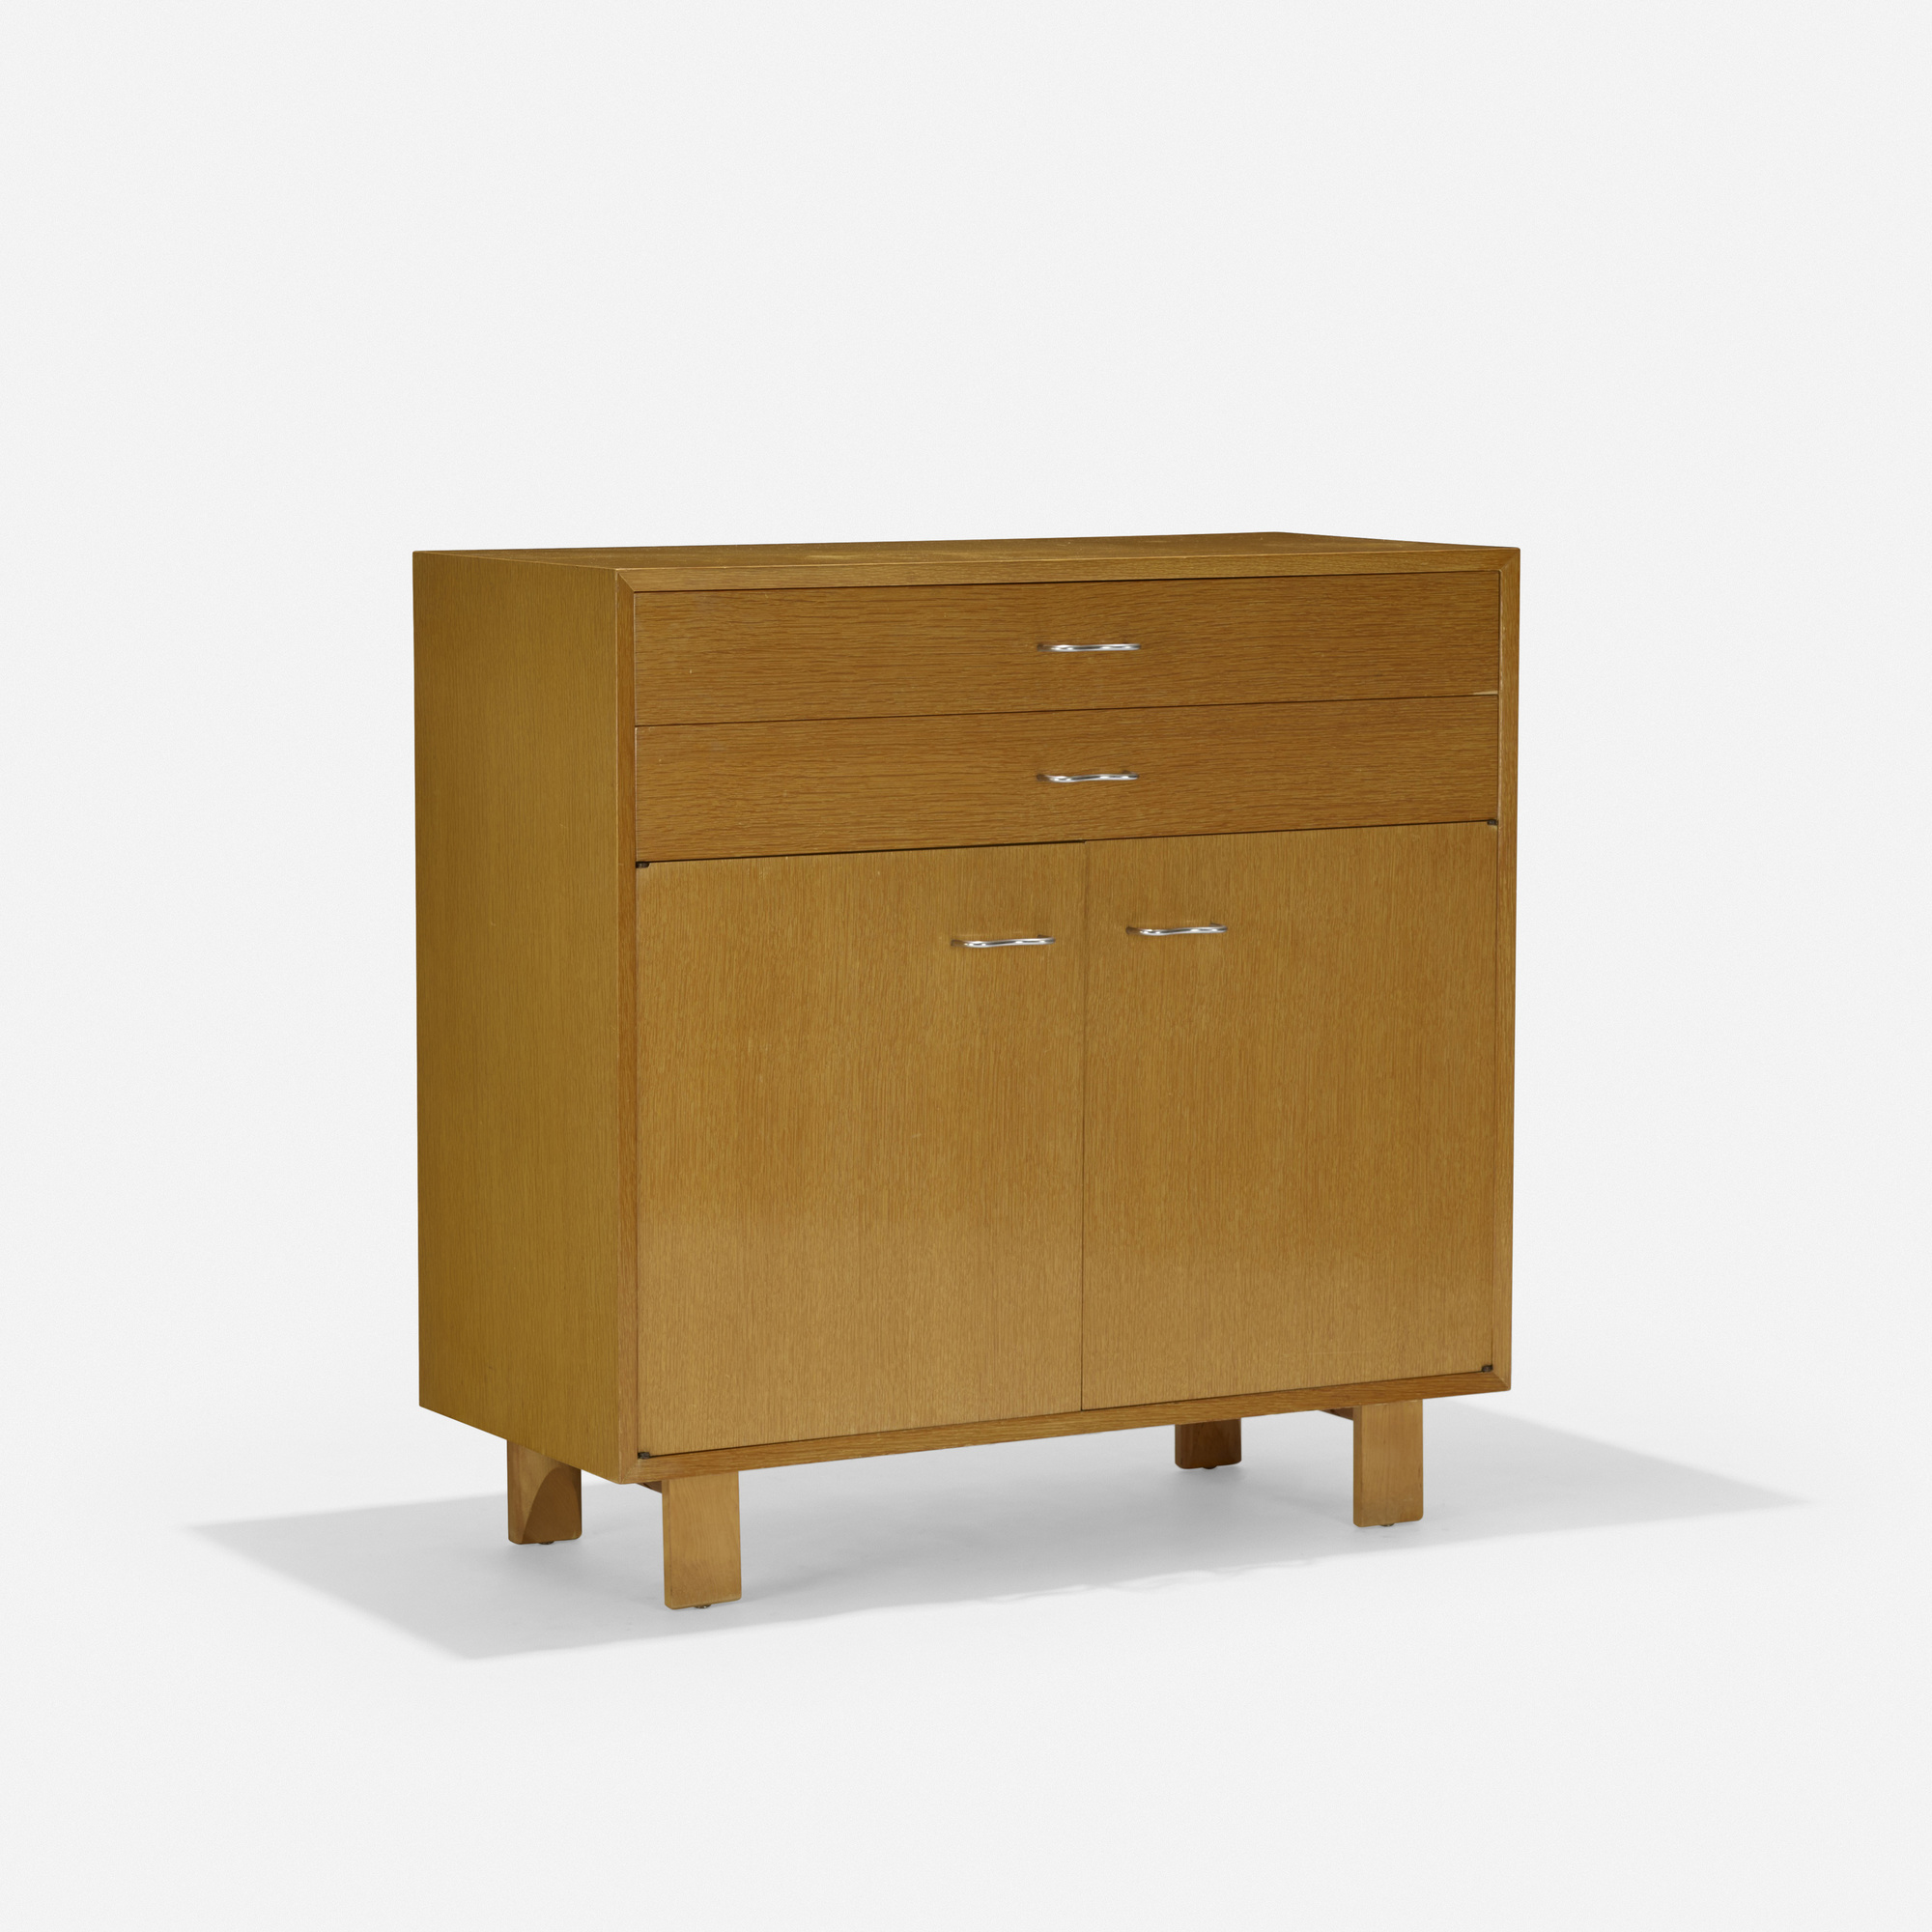 233: George Nelson & Associates / cabinet, model 4626 from the Basic Cabinet Series (2 of 3)